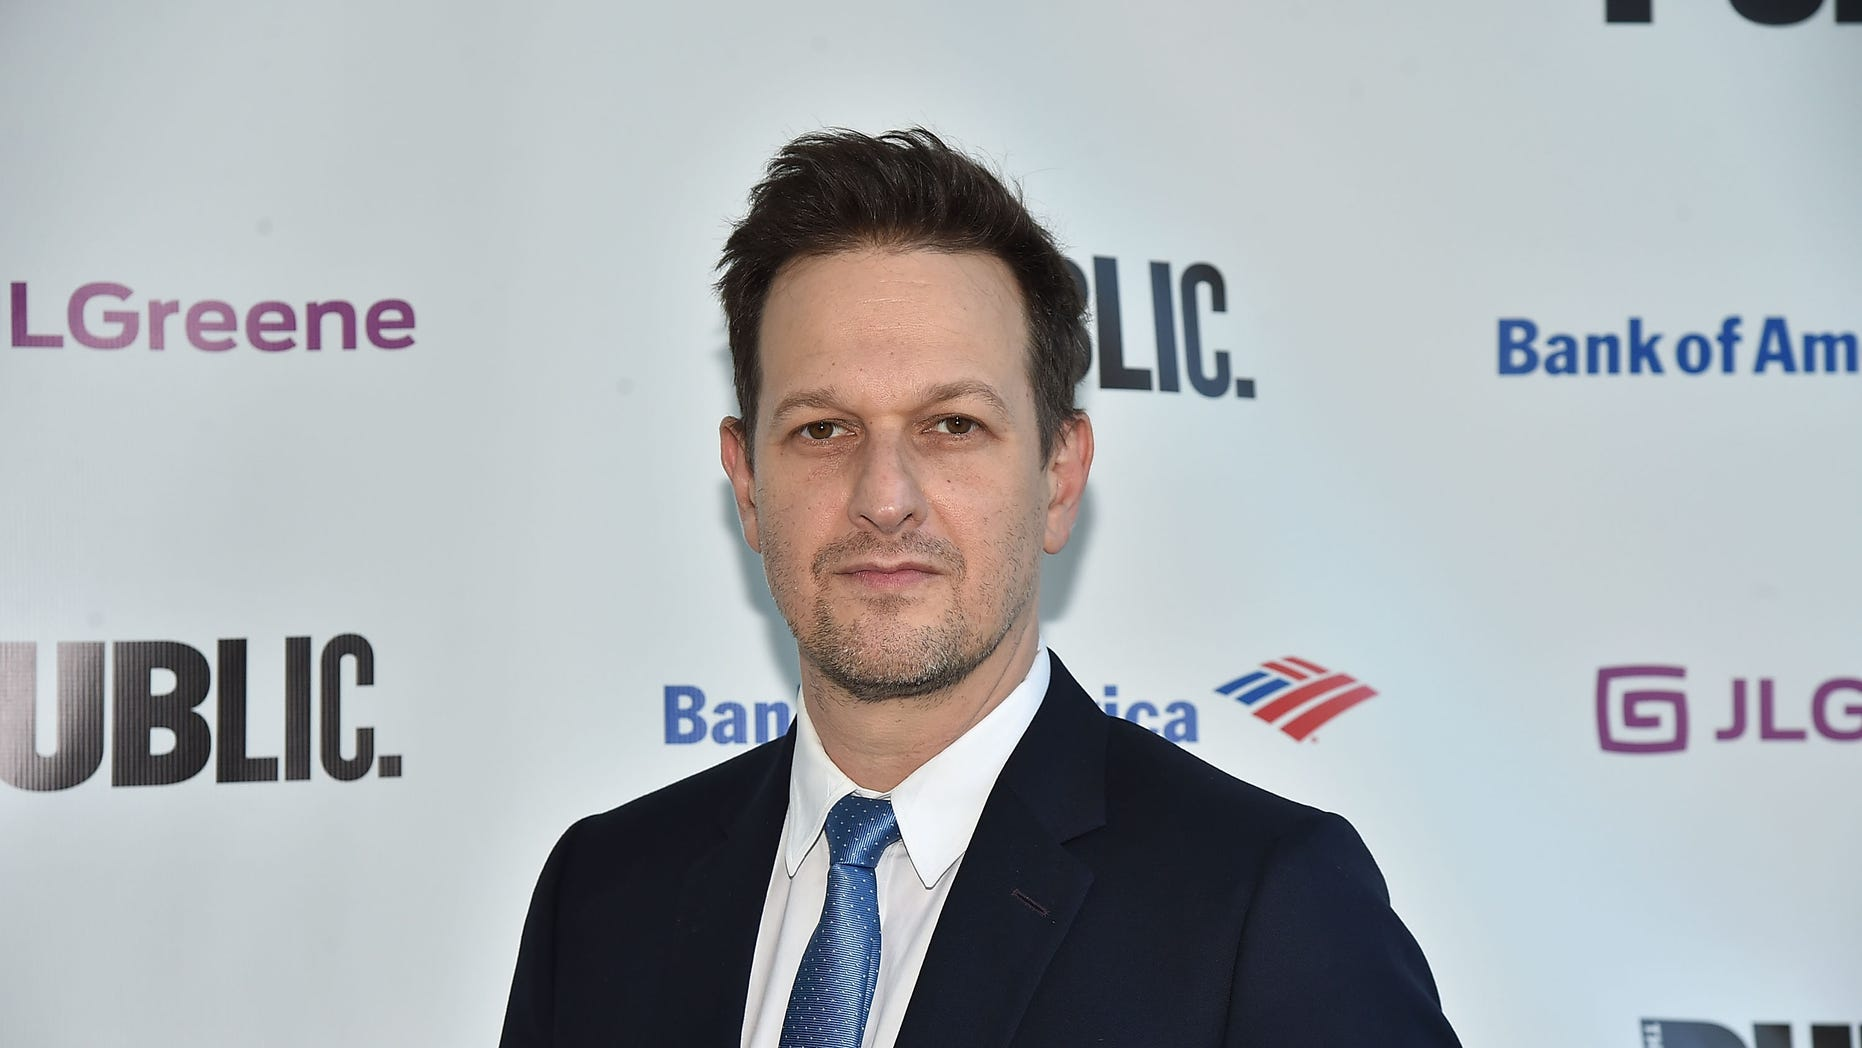 'The Good Wife' actor Josh Charles sounded off on Donald Trump in a fiery tweet.